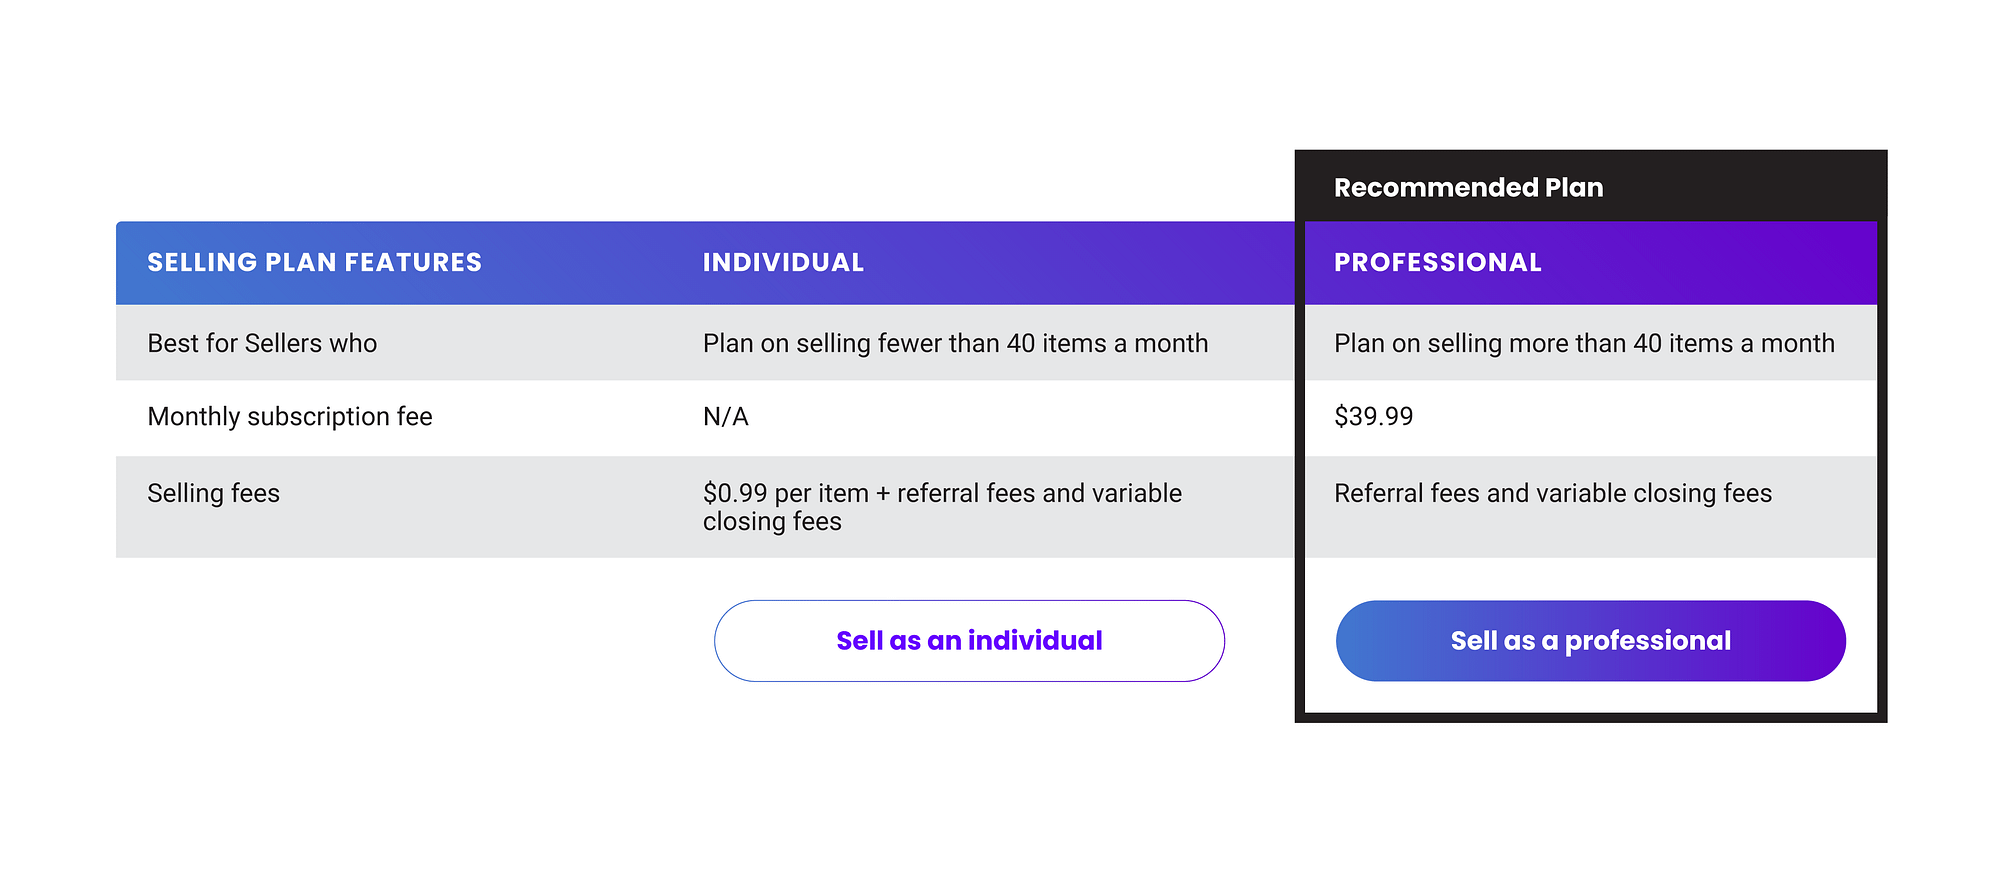 professional amazon selling plan vs individual